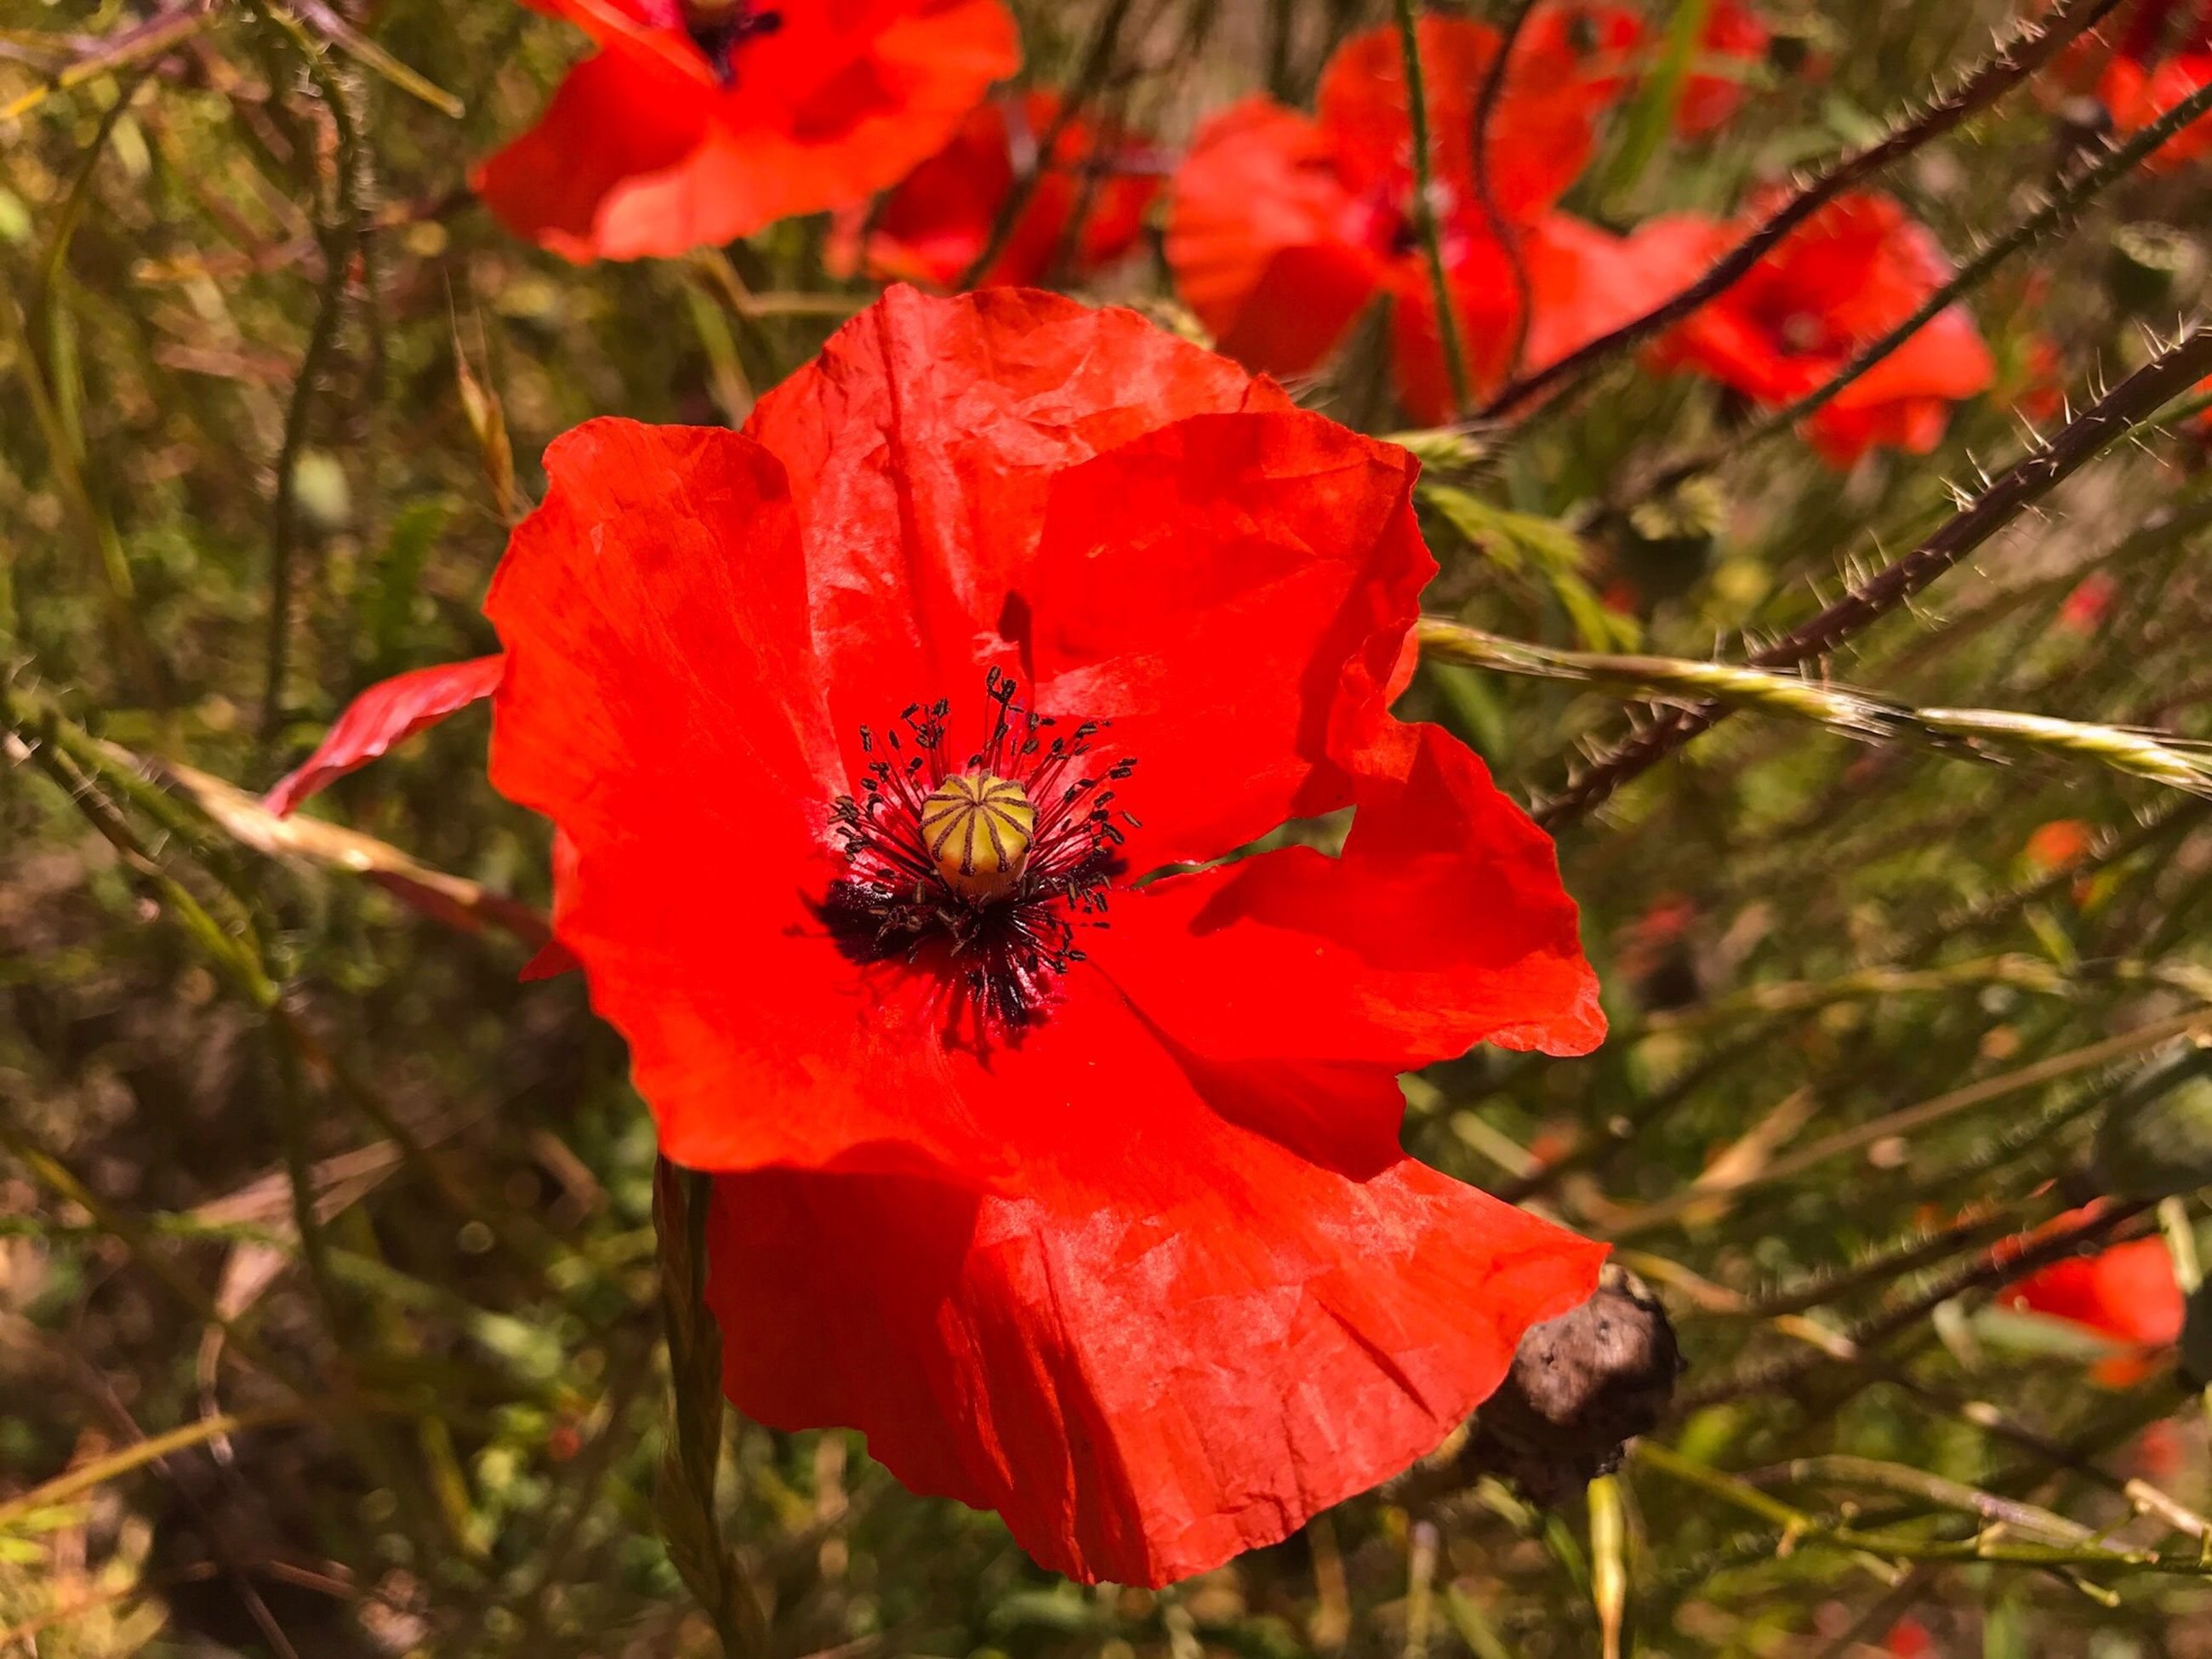 flower, red, petal, nature, growth, beauty in nature, insect, flower head, freshness, plant, fragility, no people, outdoors, blooming, bee, animals in the wild, animal themes, one animal, poppy, day, pollination, close-up, hibiscus